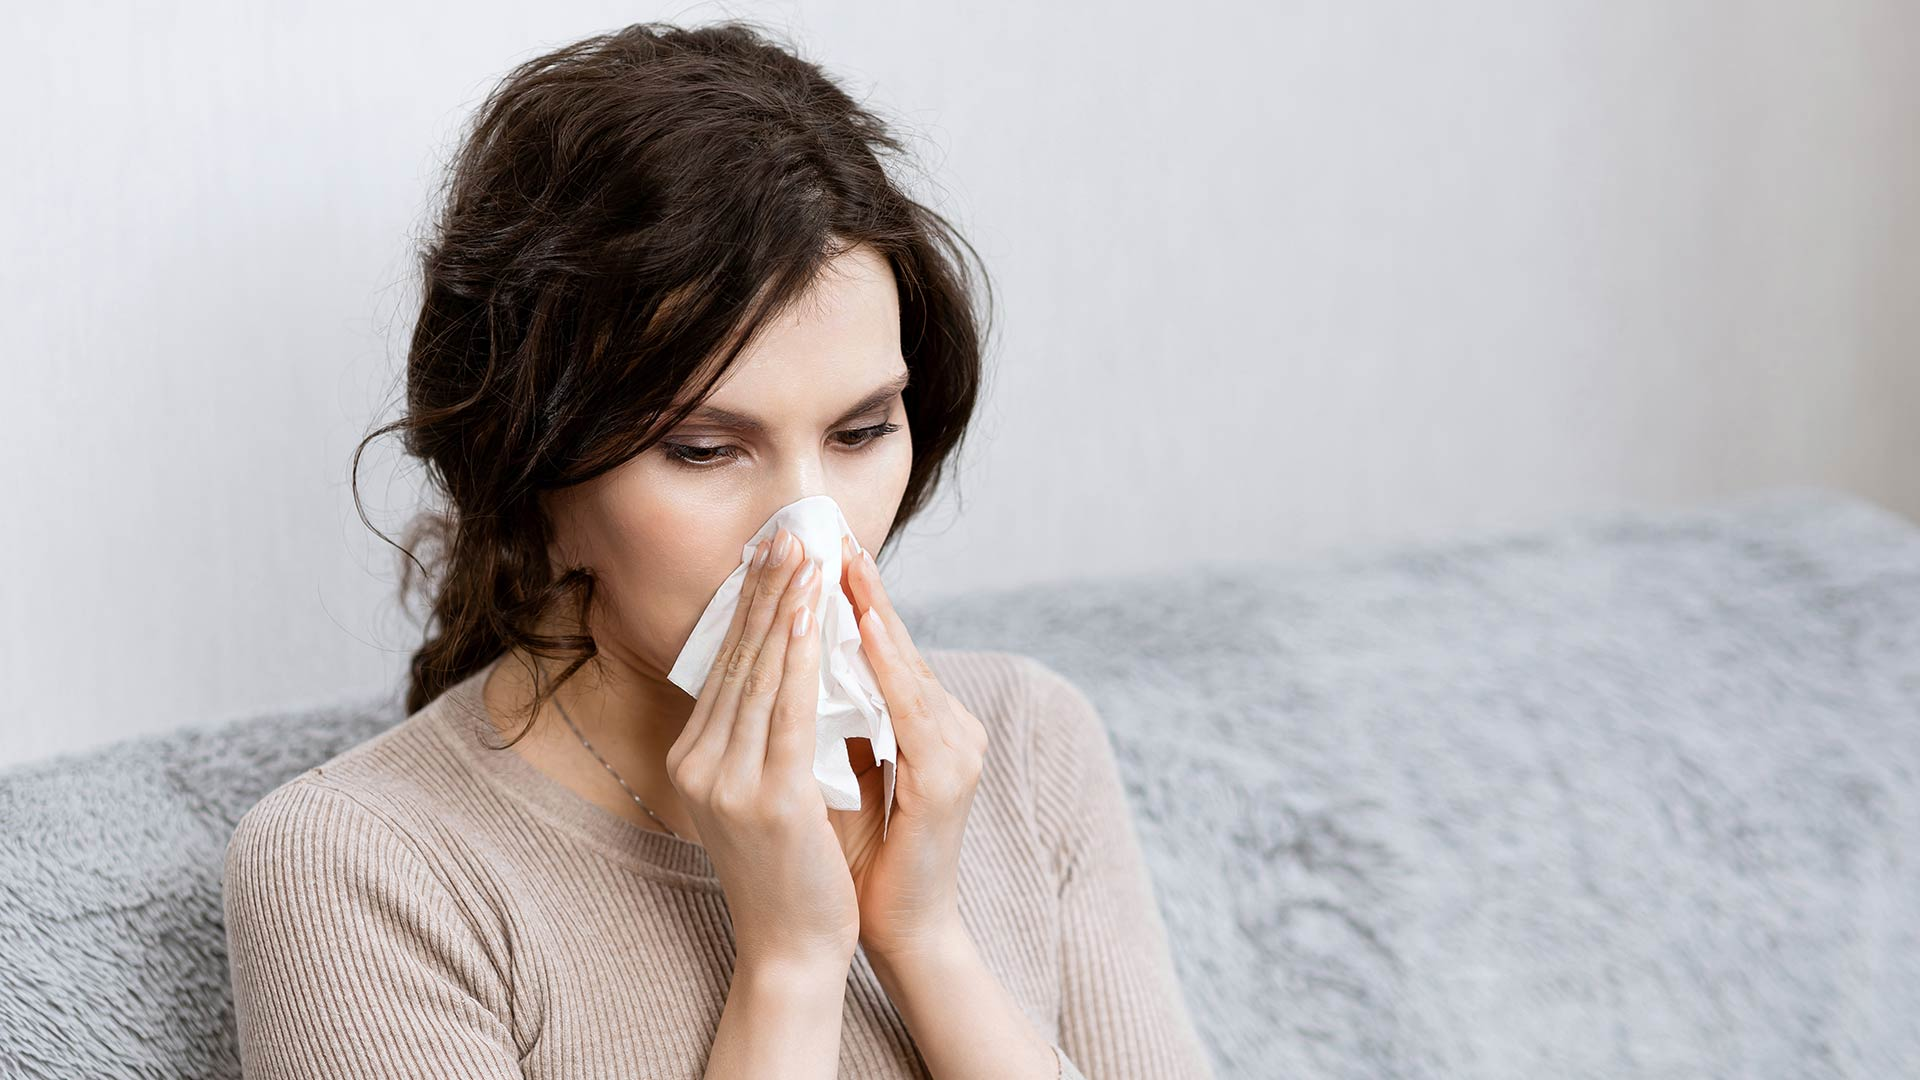 photo of sick woman with COVID-19